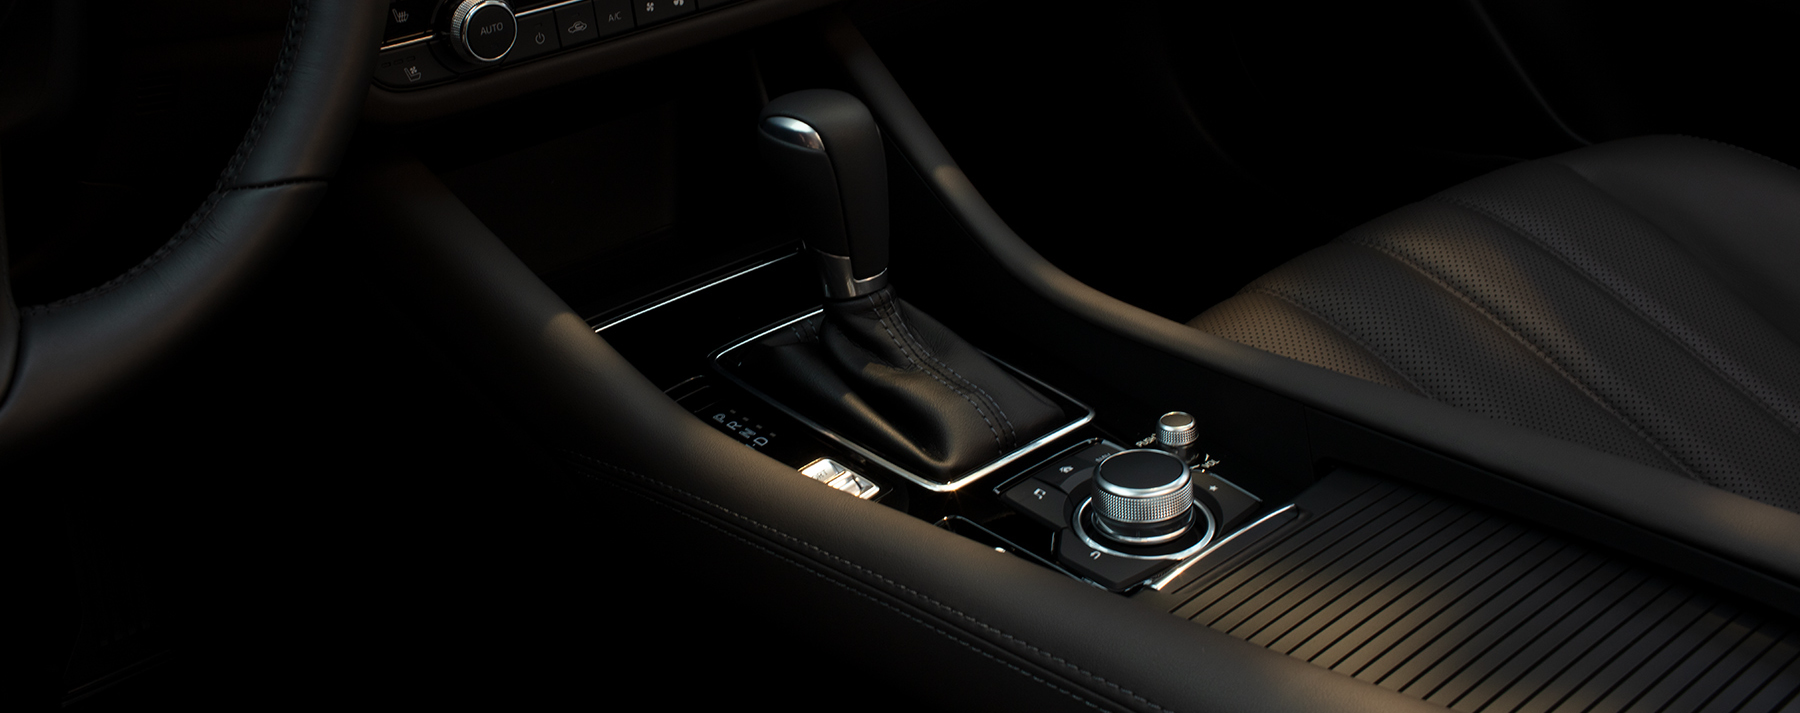 You'll Love All the Amenities in the 2020 MAZDA6!